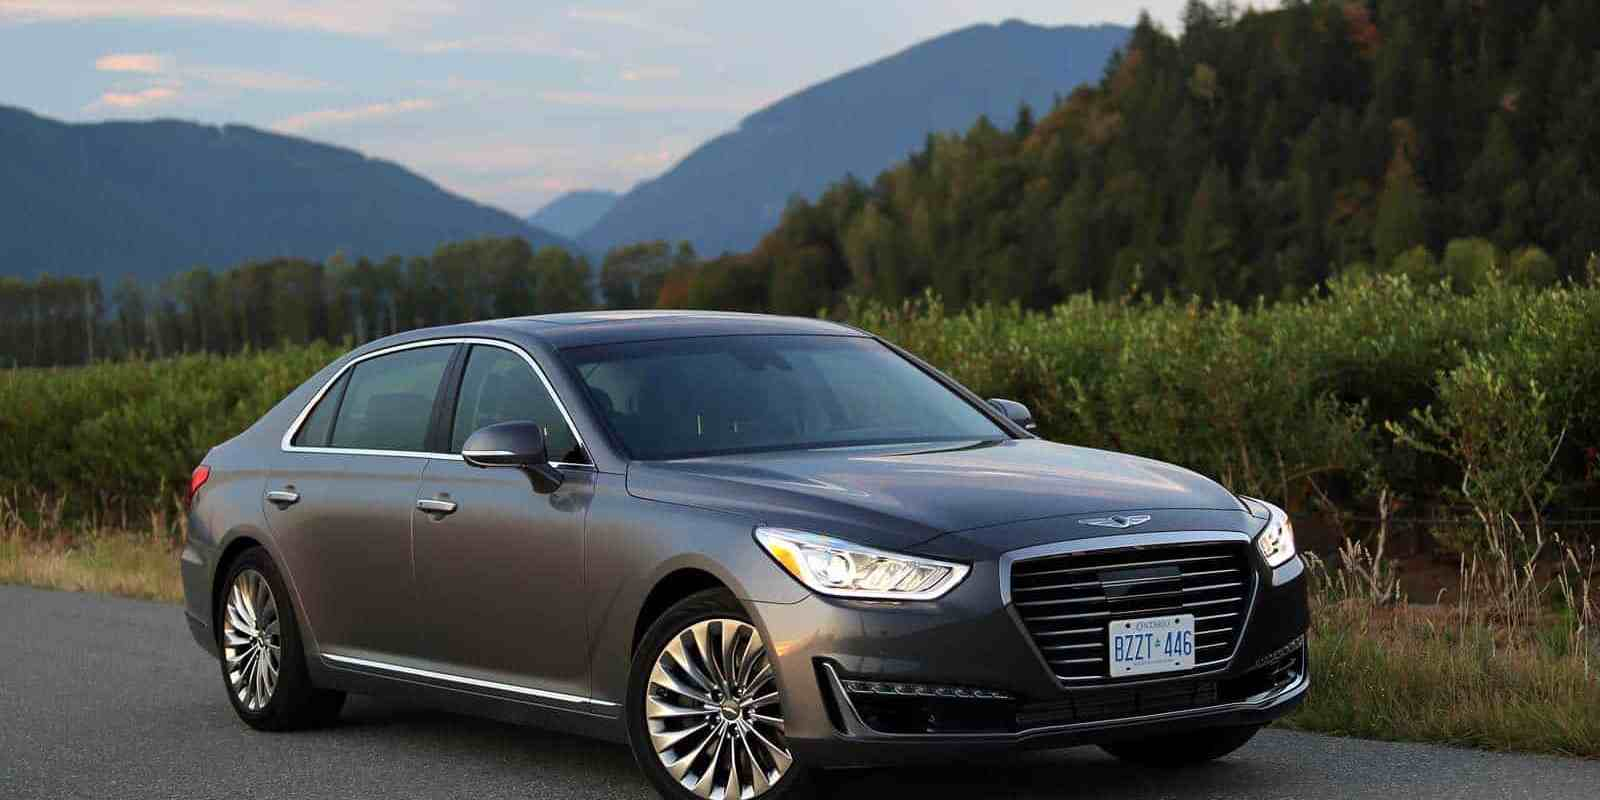 Review: 2017 Genesis G90 - New Brand, New Car